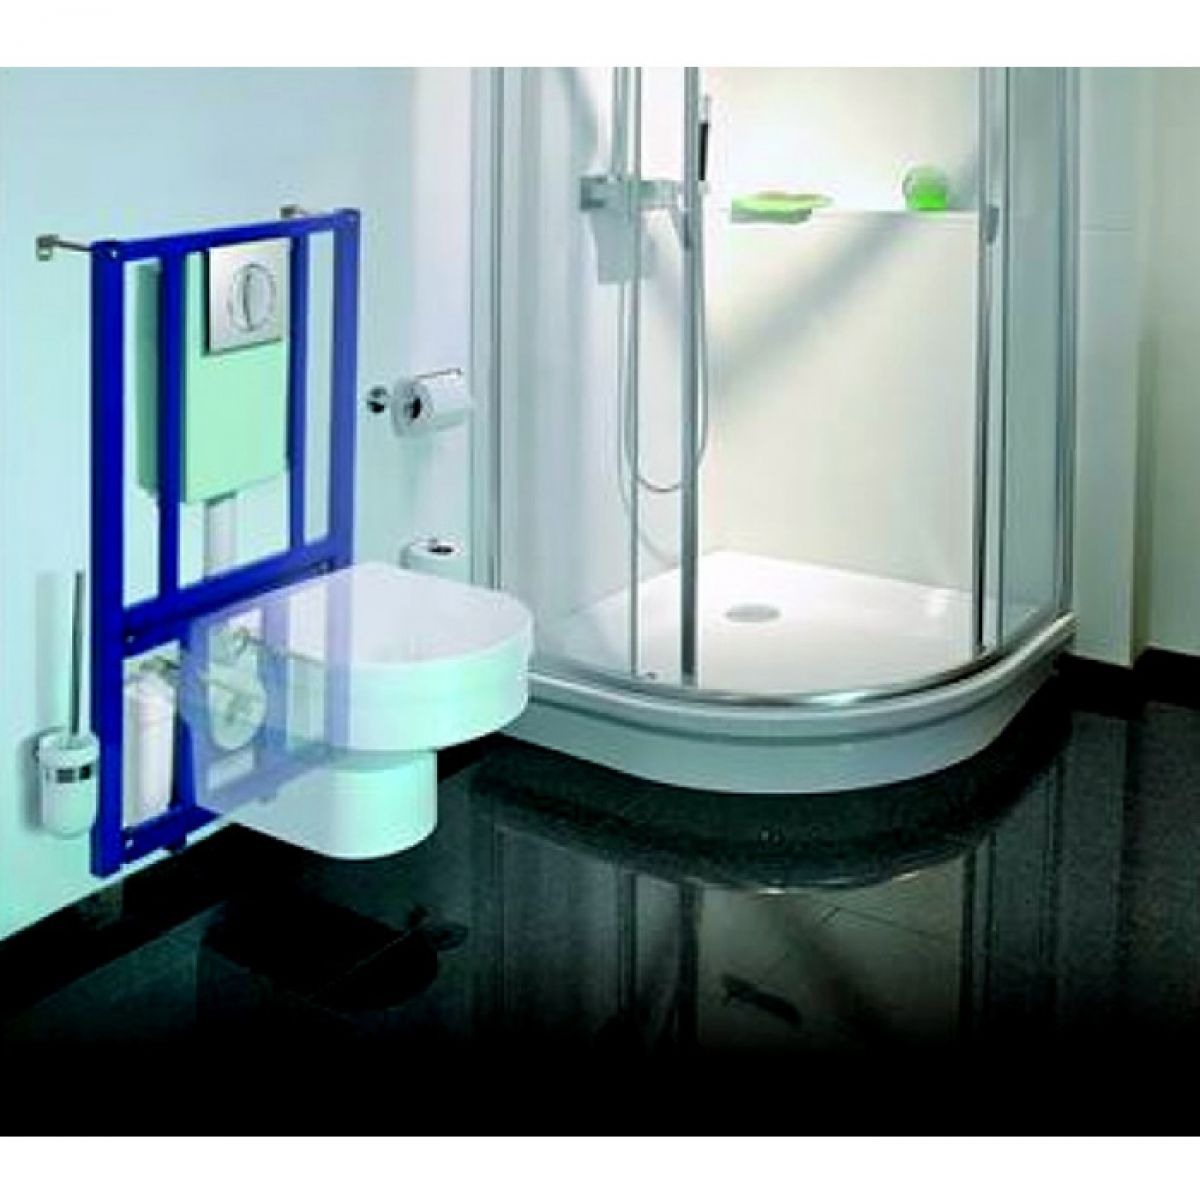 Saniflo Saniwall Macerator With Wc Frame Uk Bathrooms